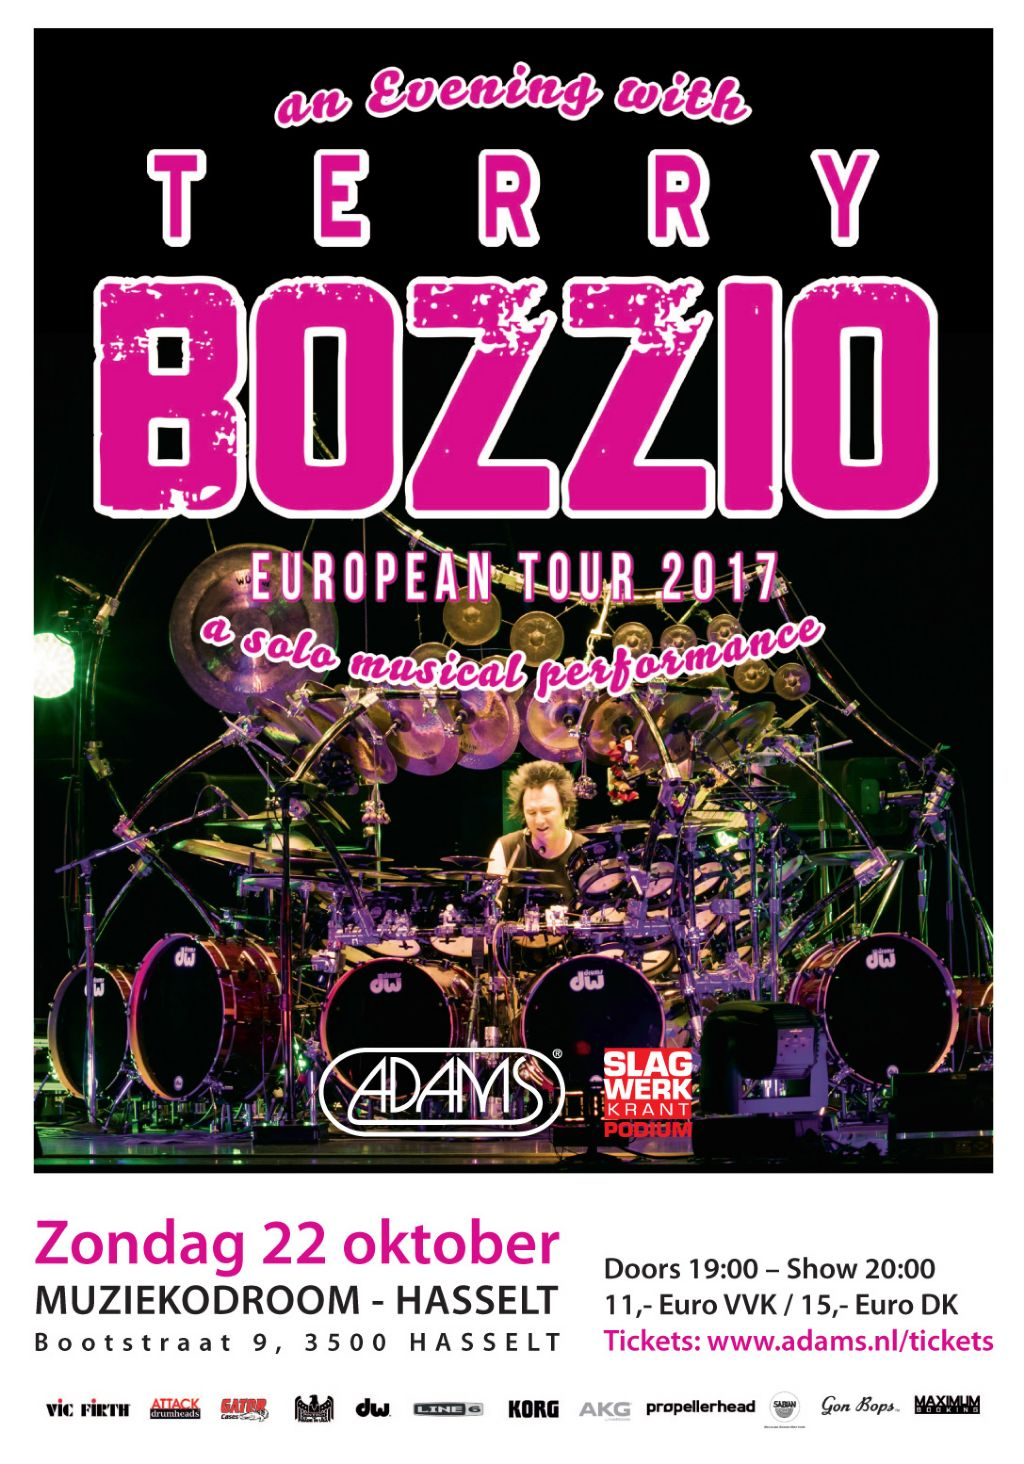 An Evening with TERRY BOZZIO European Tour 2017